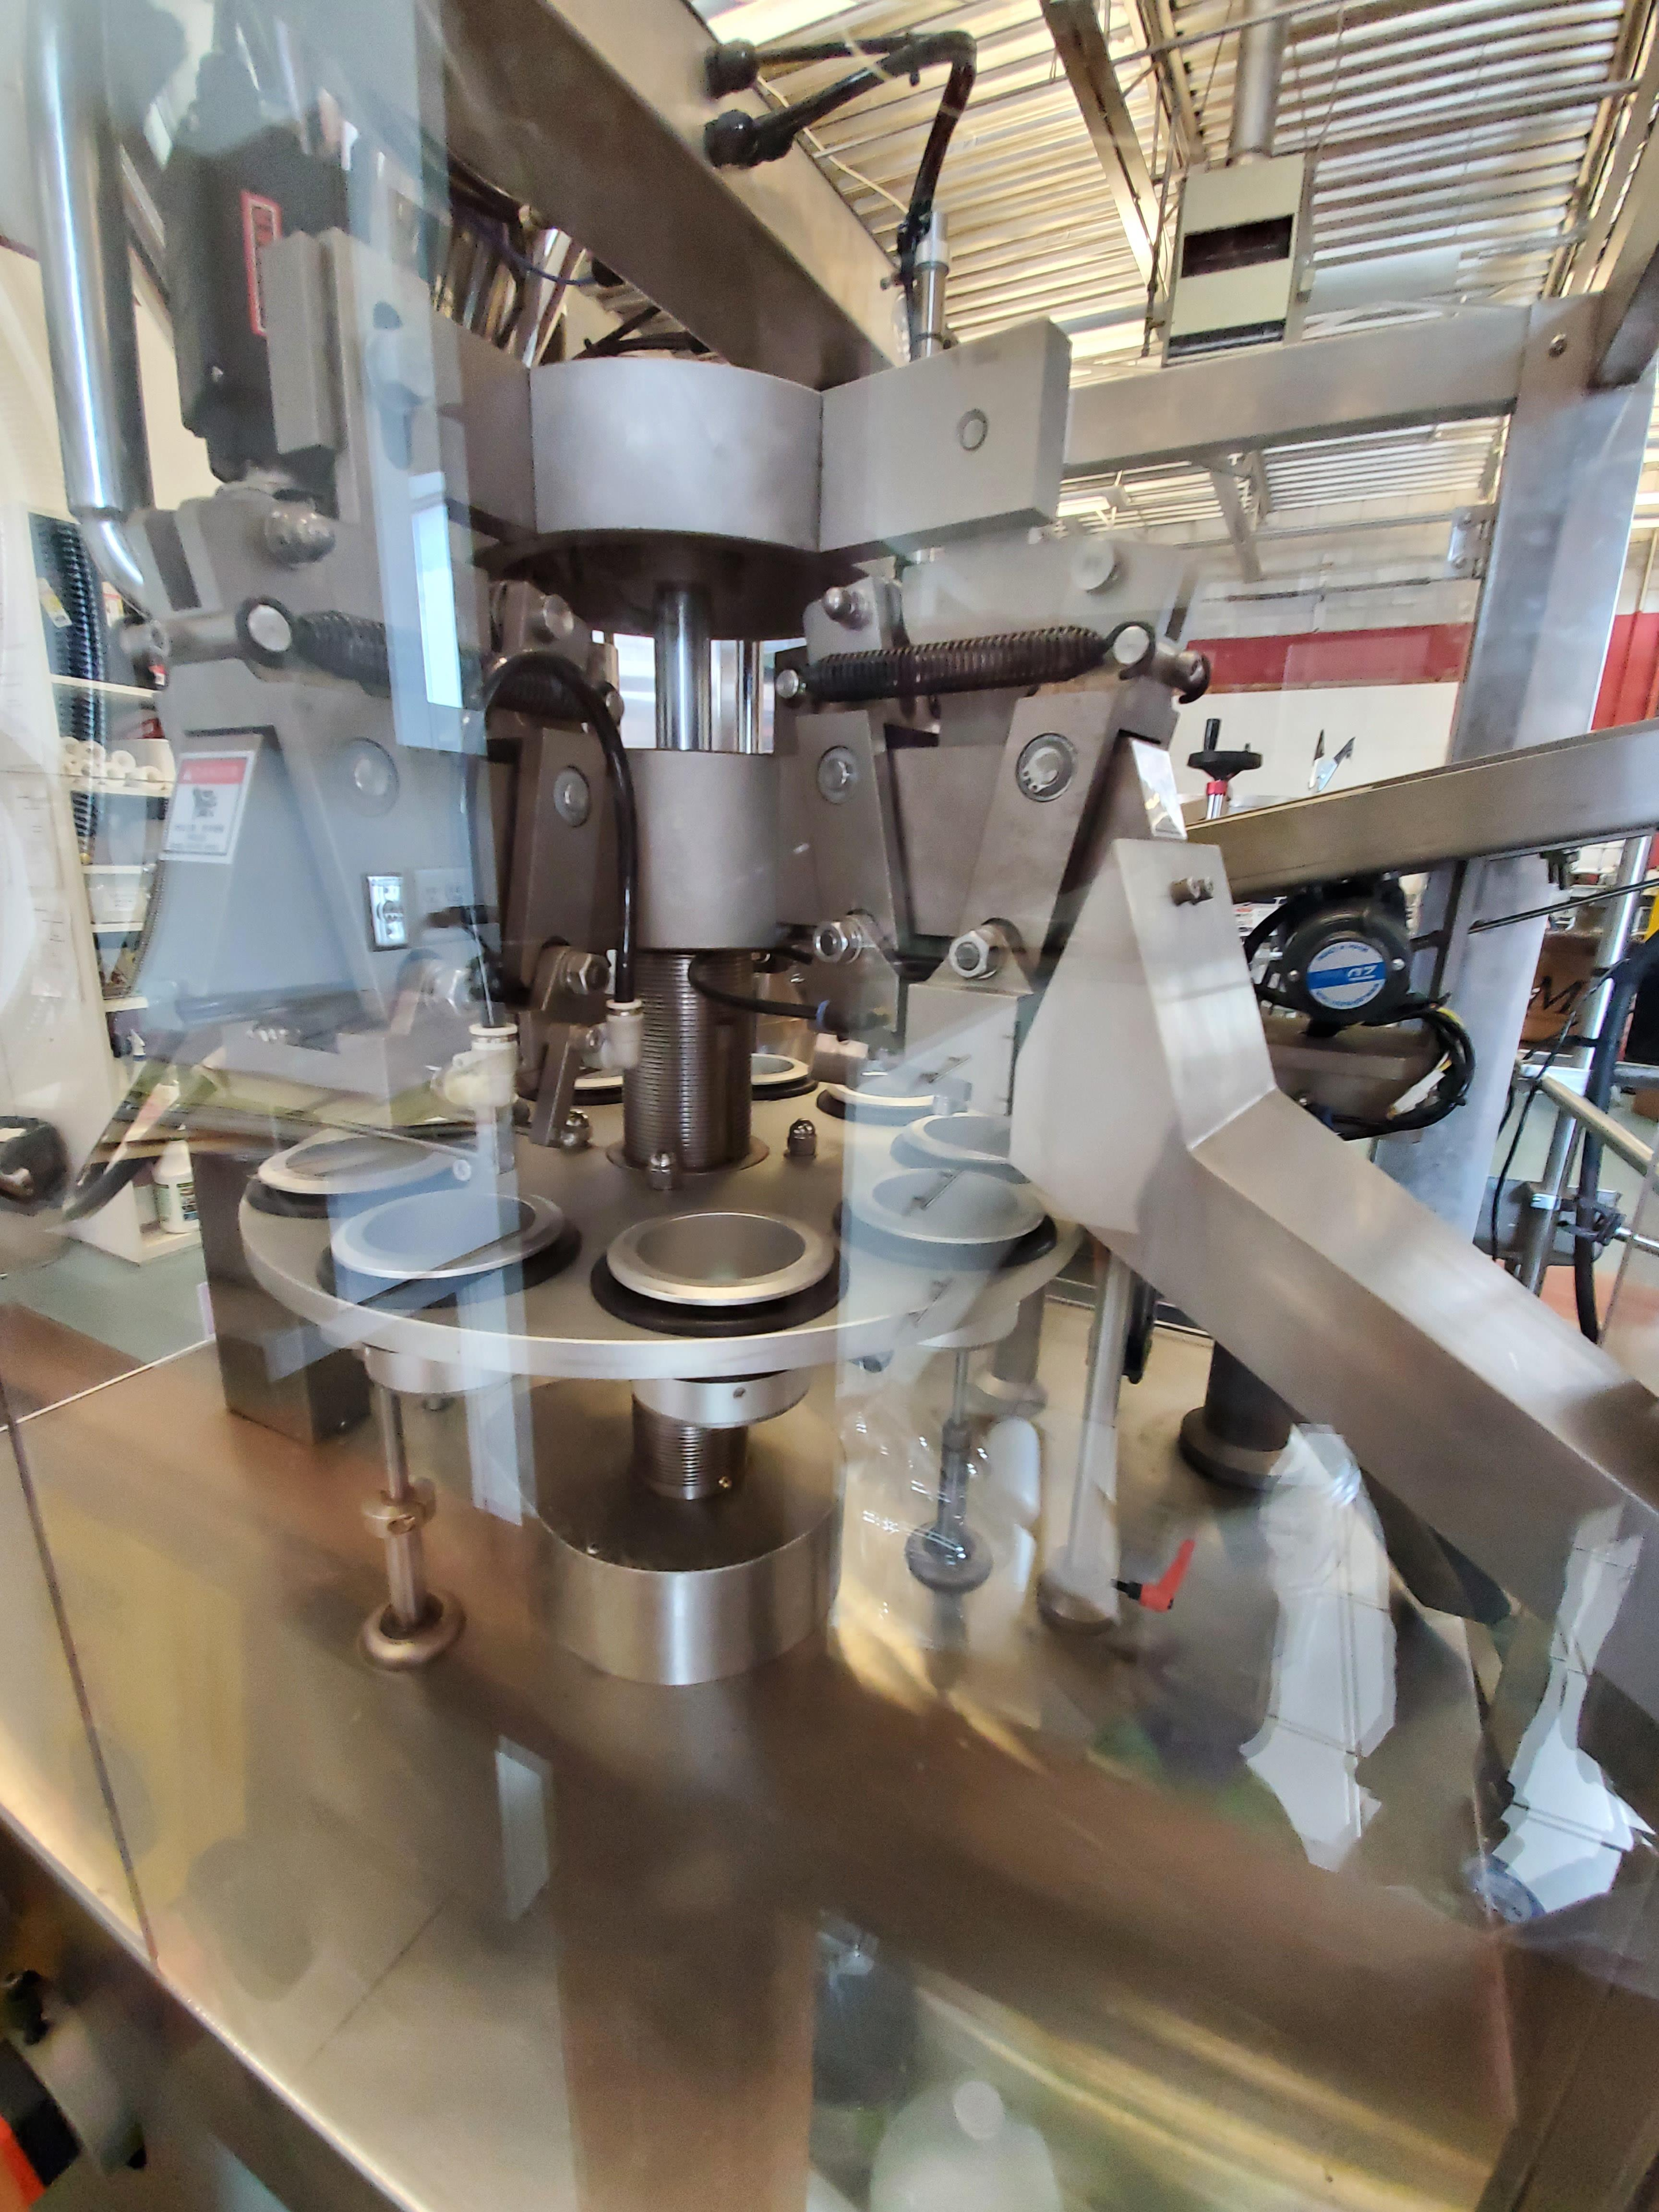 Chasing 8 Station Automatic Plastic Tube Filler w/ Hot Air Seal - Image 9 of 13